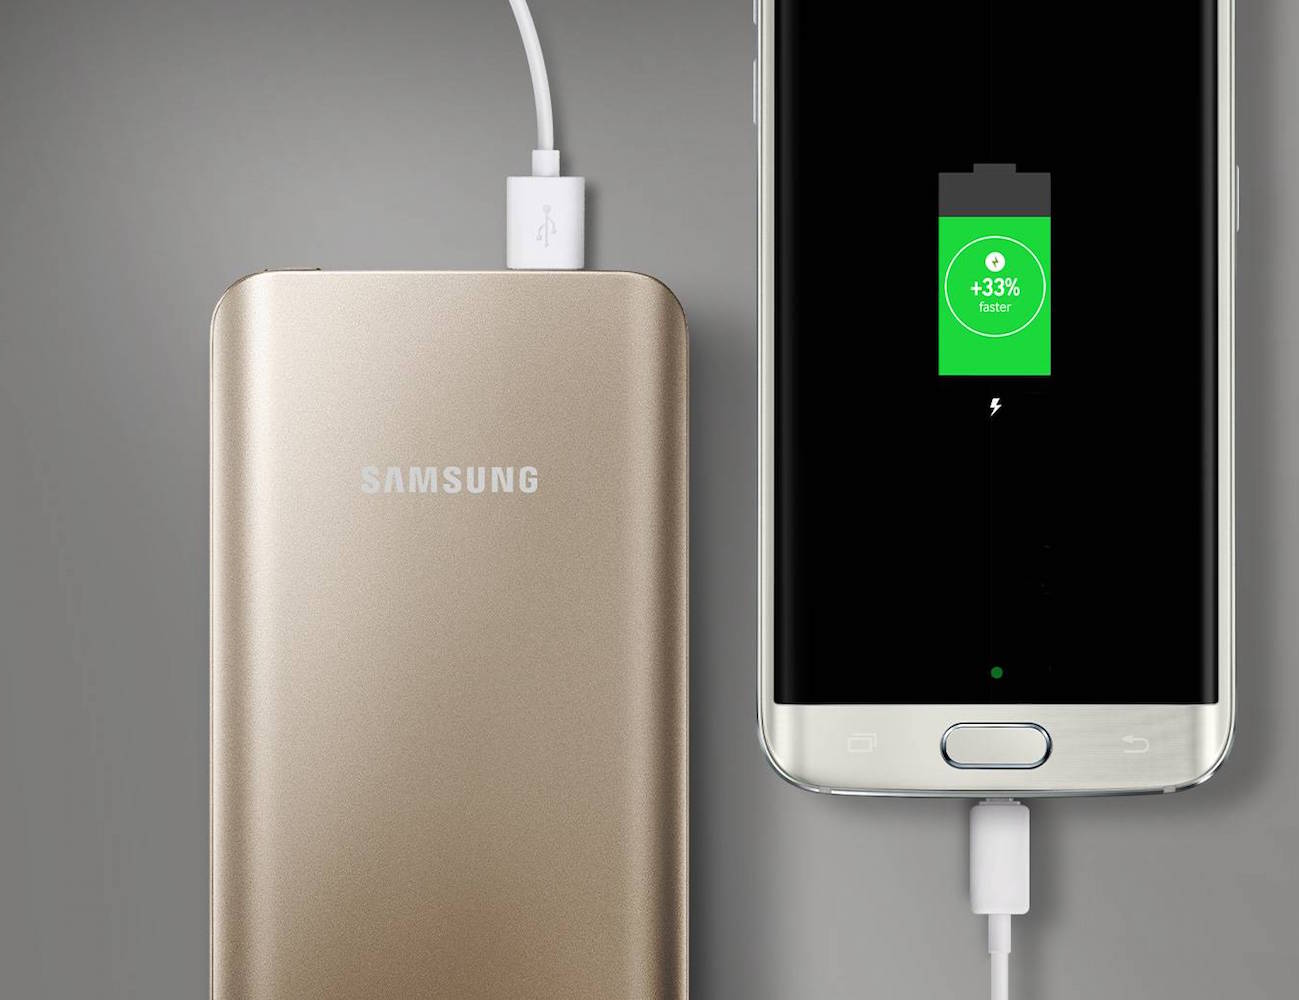 Samsung Fast Charge 5200 mAh Battery Pack